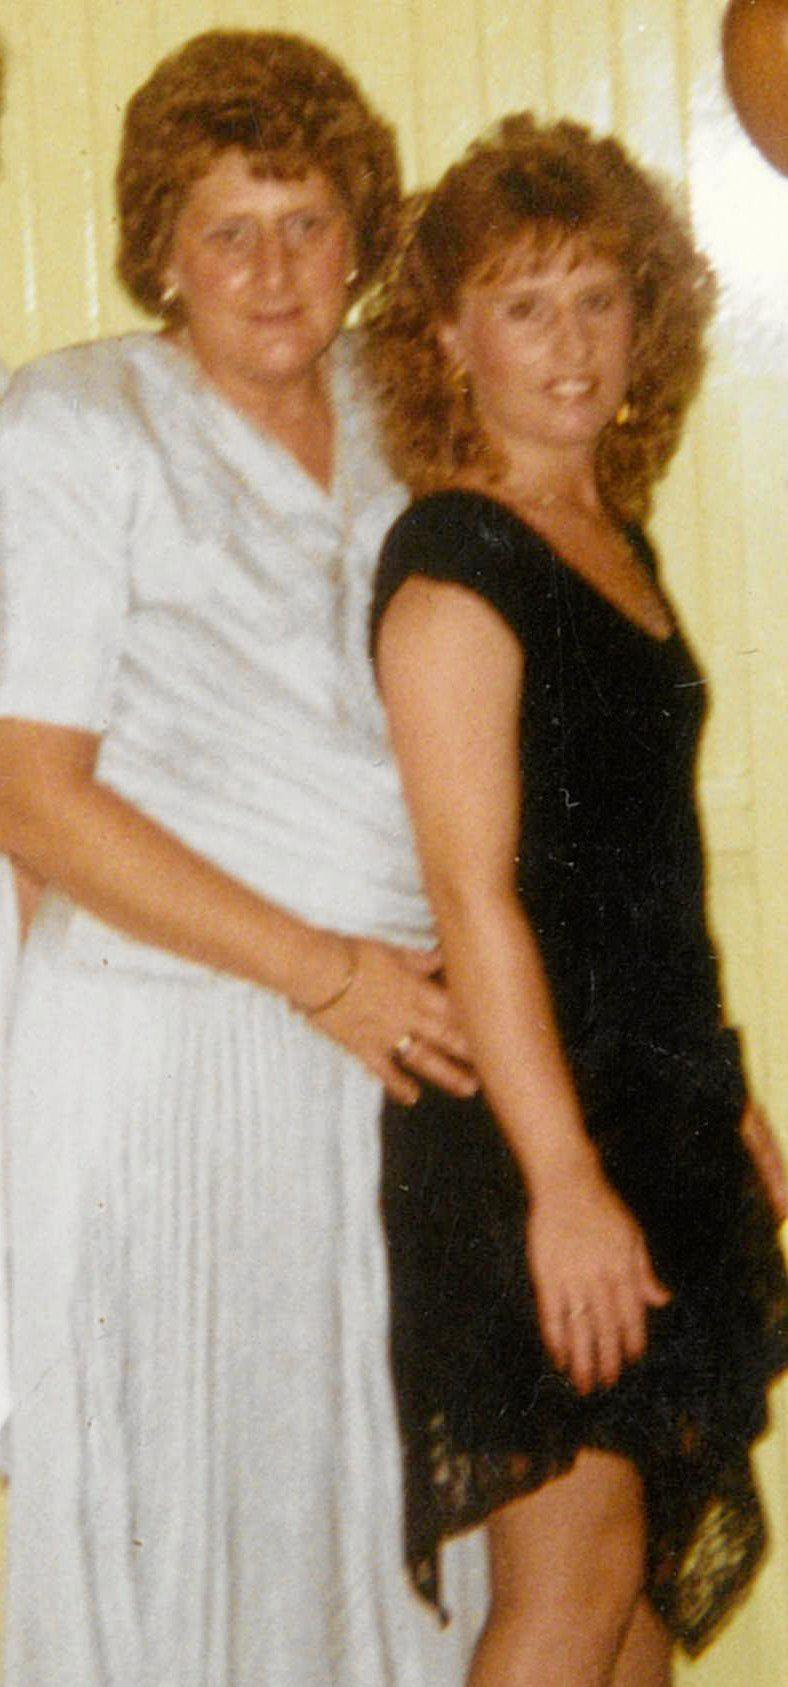 Judith Read and her daughter Wendy in the 1980s.